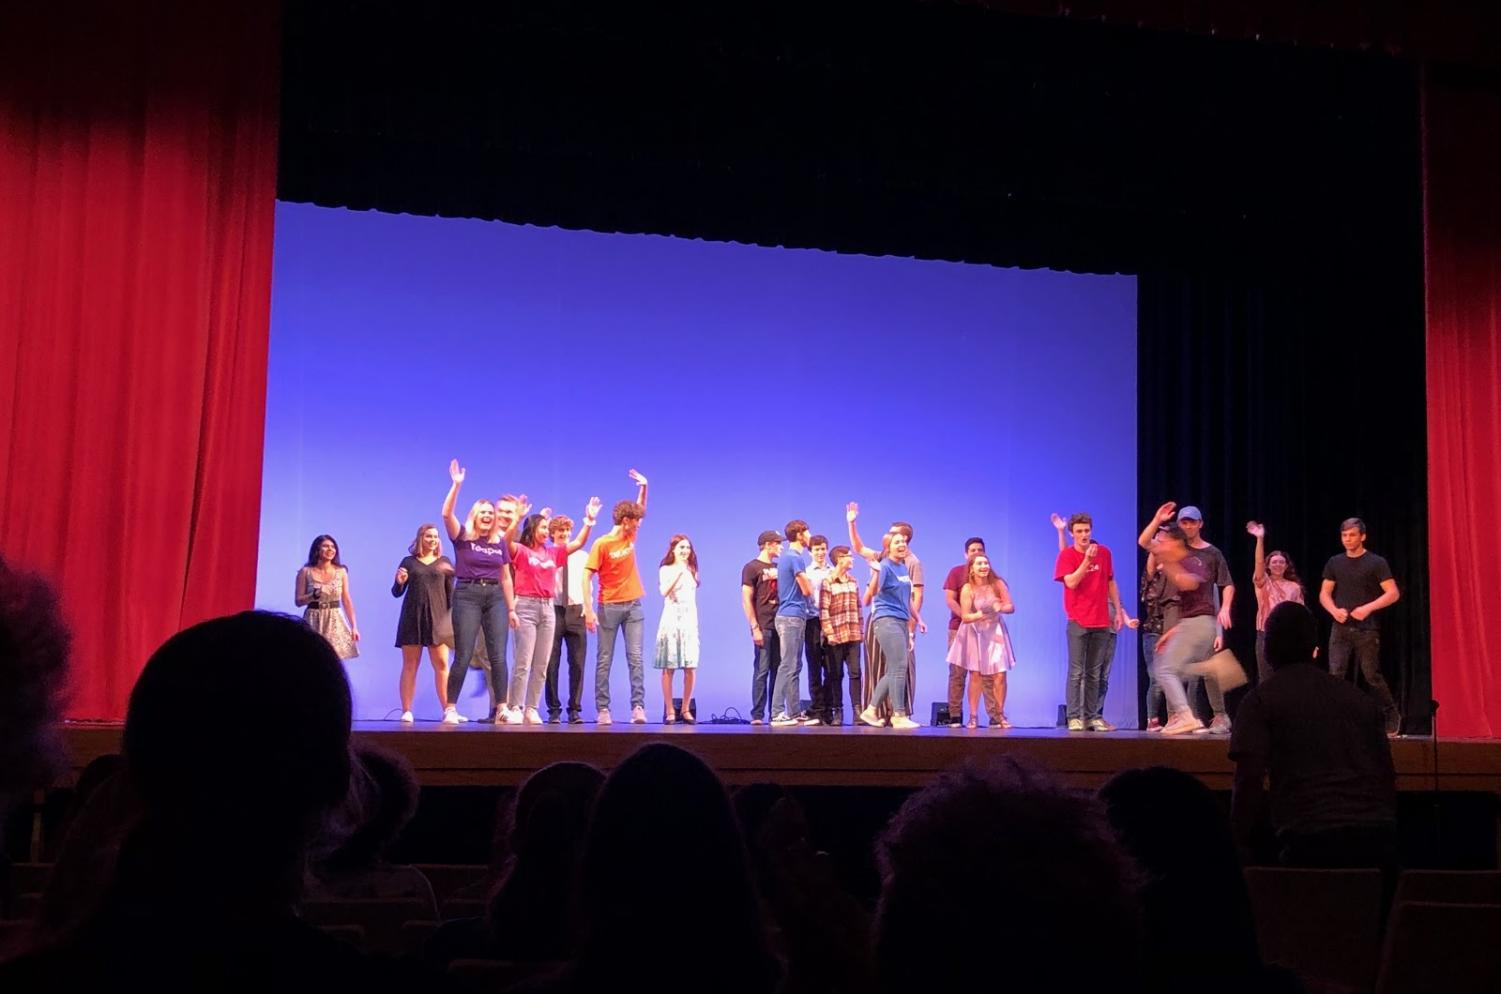 The cast and crew waving goodbye at the end of The Variety Show.